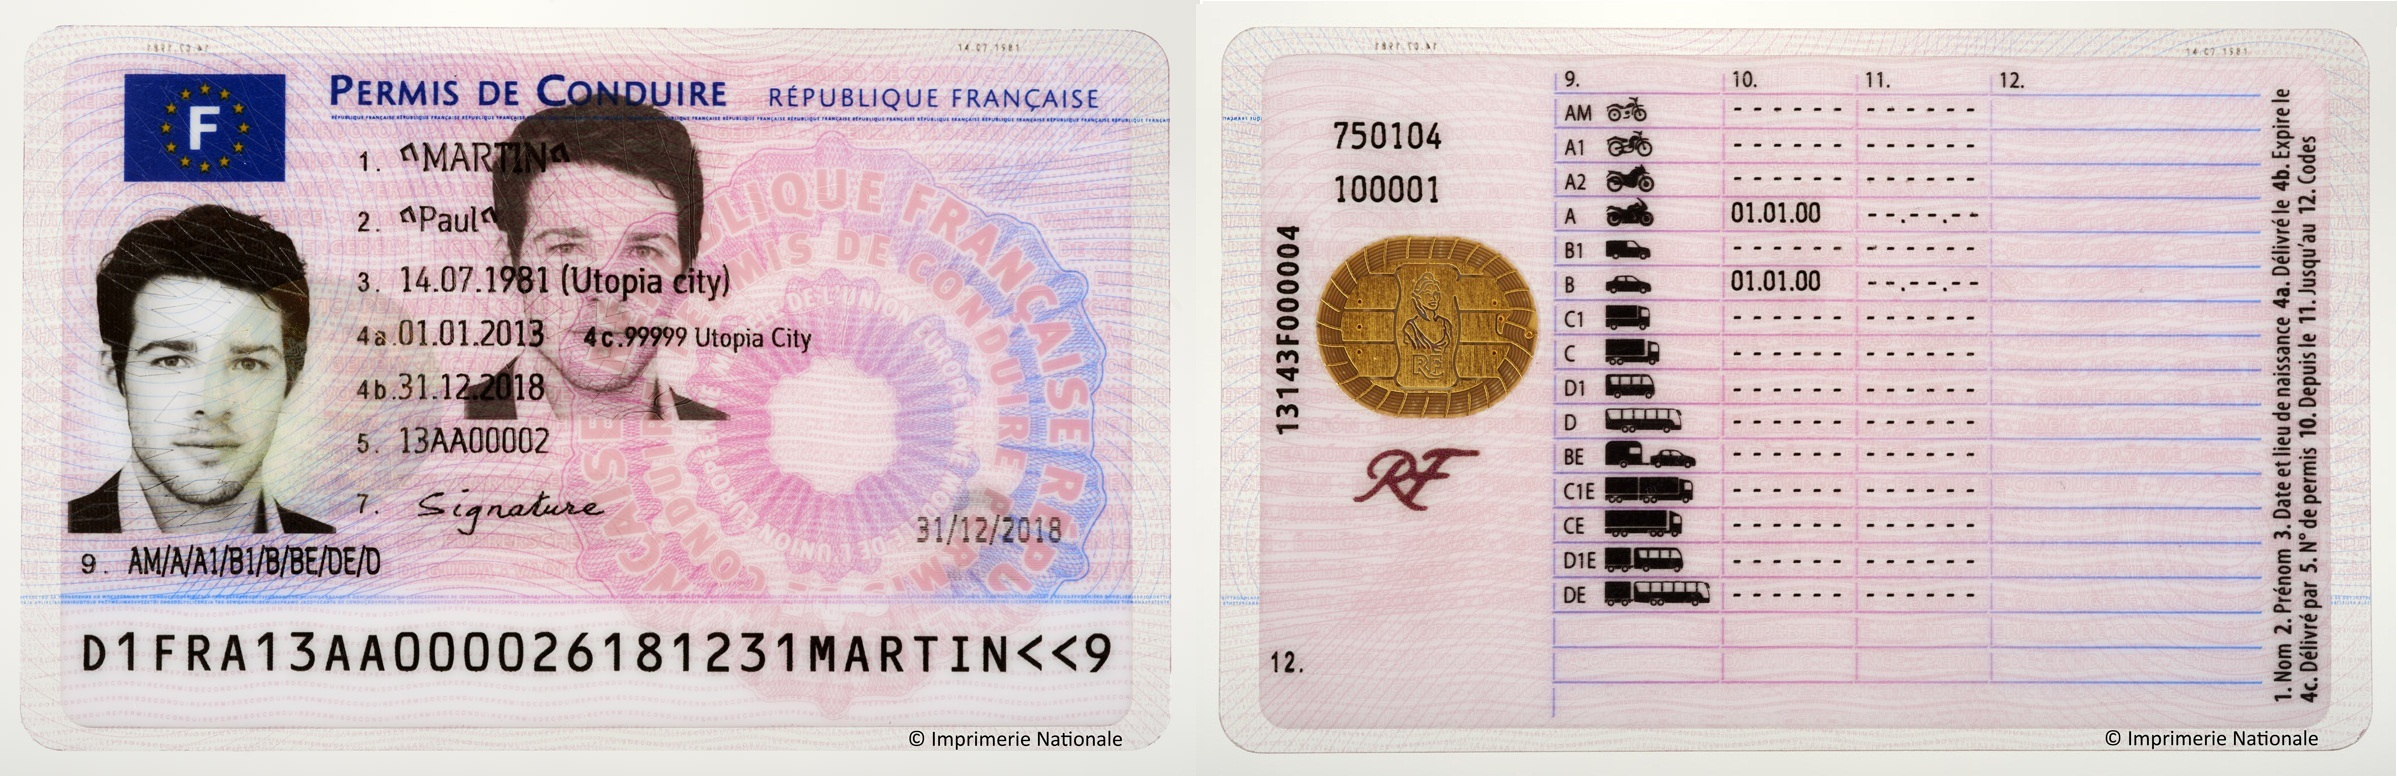 Electronic For Imprimerie Wire Driving French License Business The Nationale Selects Gemalto